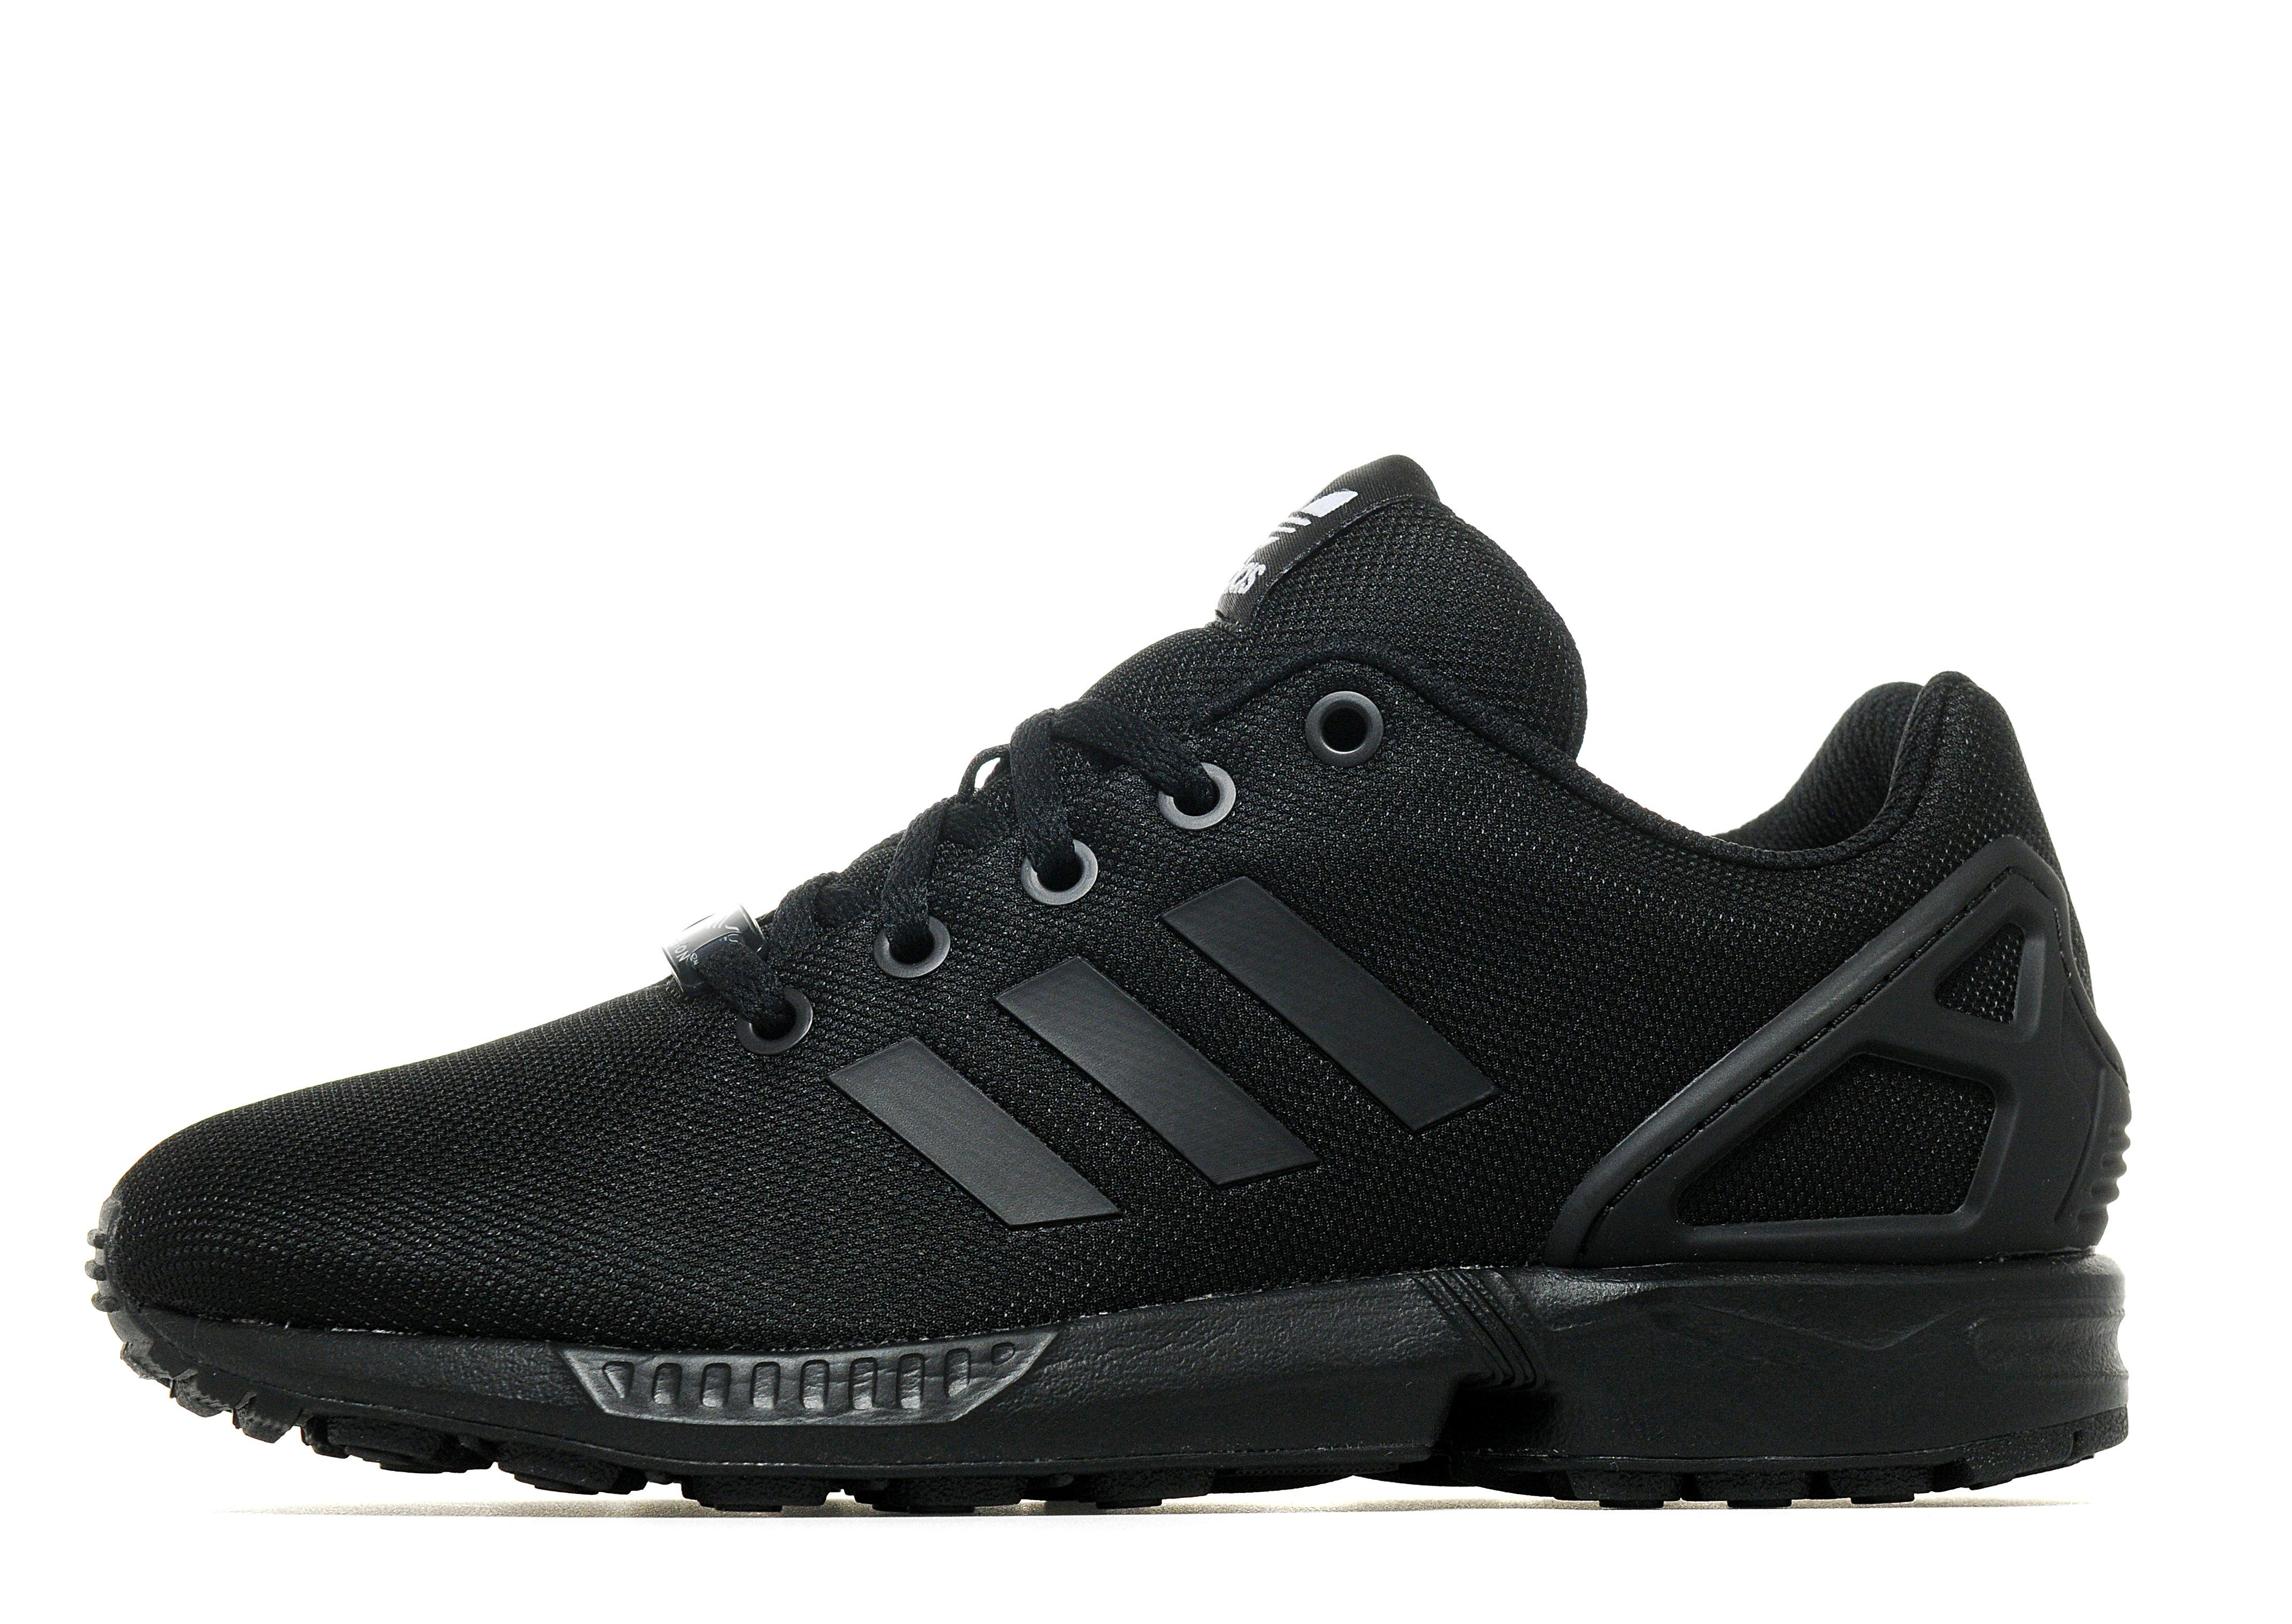 Black Unisex Adidas Zx Flux Core Shoes